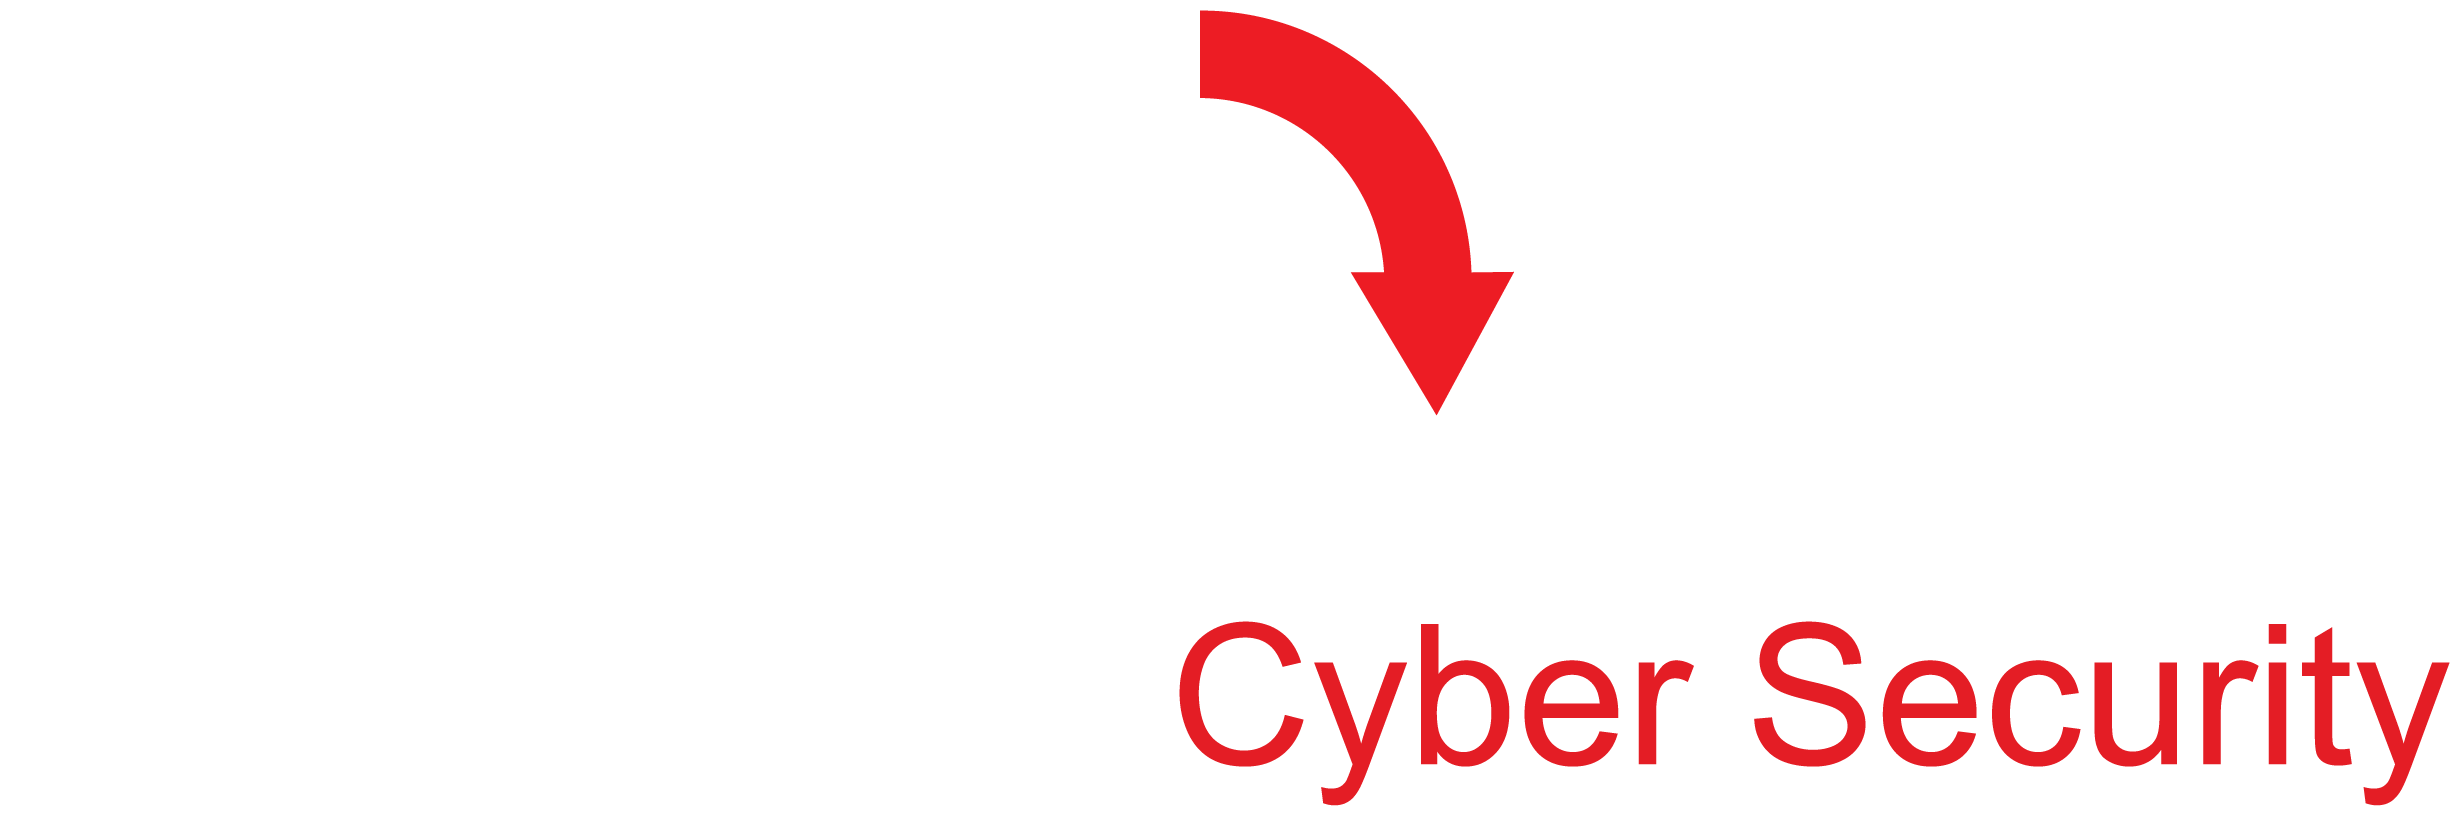 Xyone Cyber Security logo